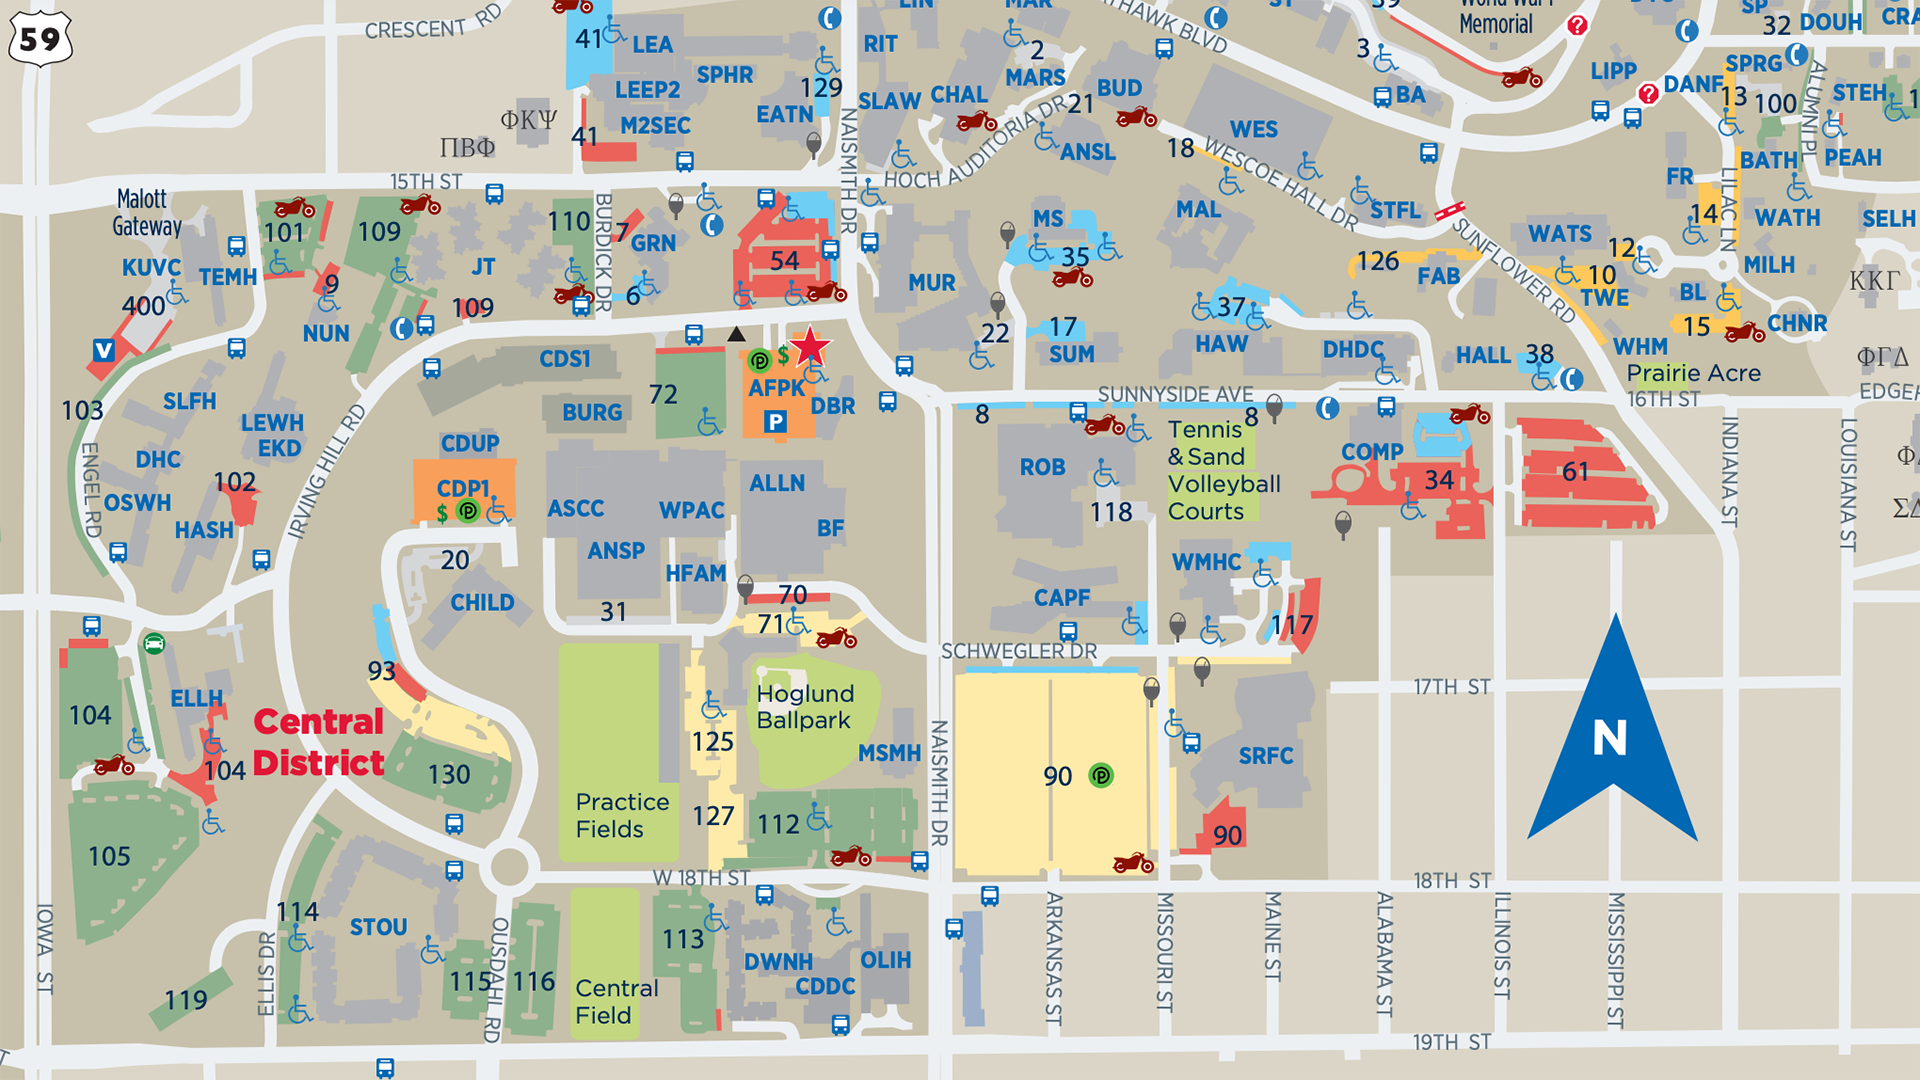 2019 late night parking map campus